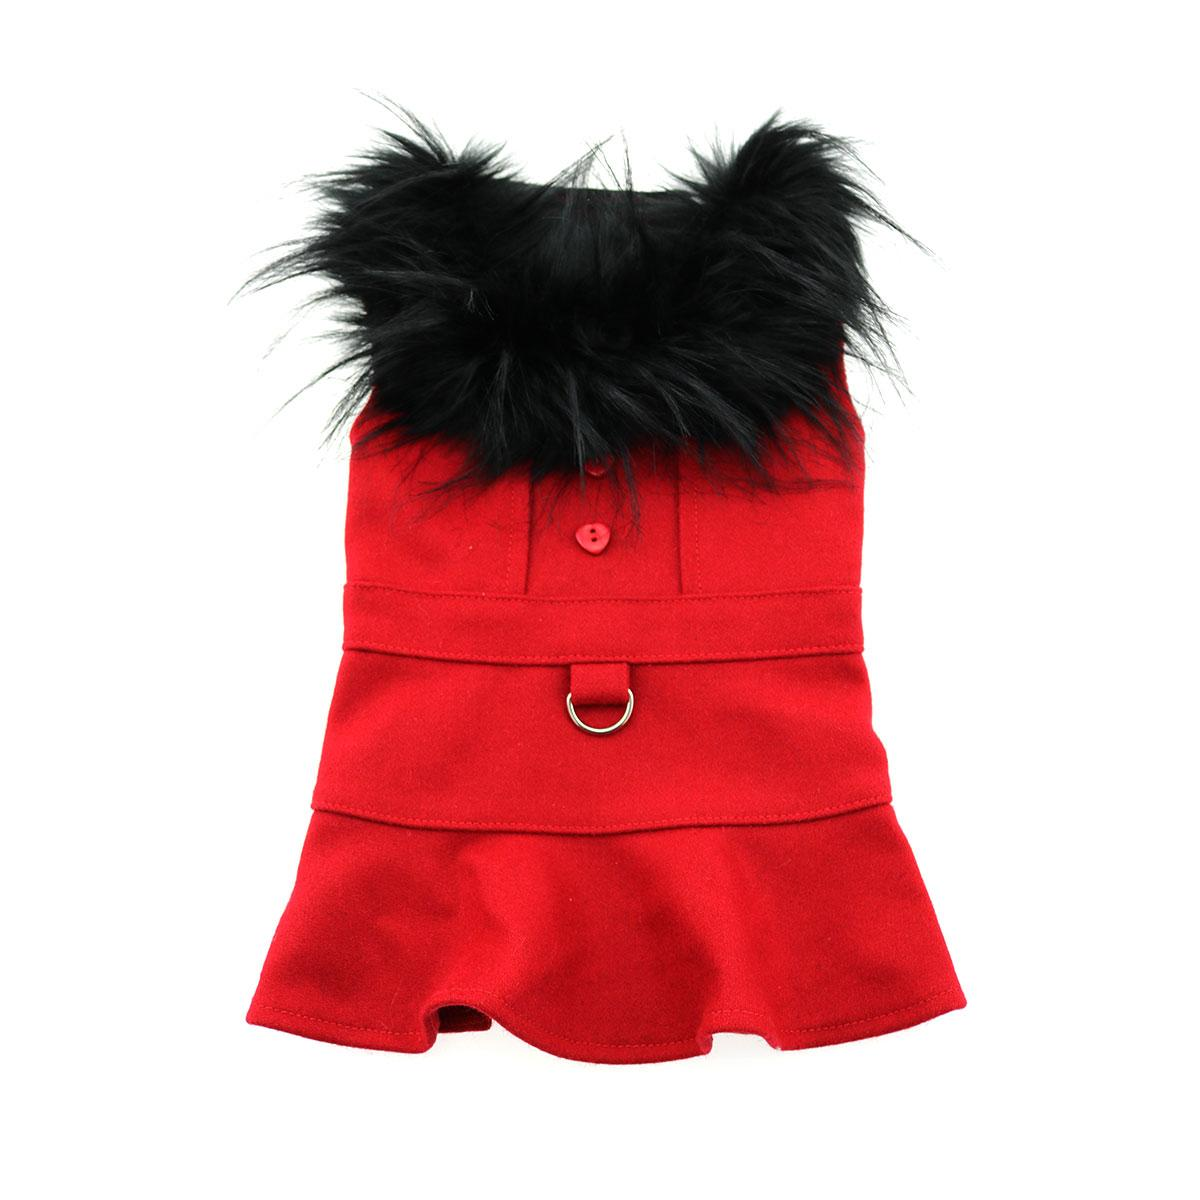 Doggie Design Designer Dog Coat Harness with Matching Leash, Red Wool with Fur, X-Small